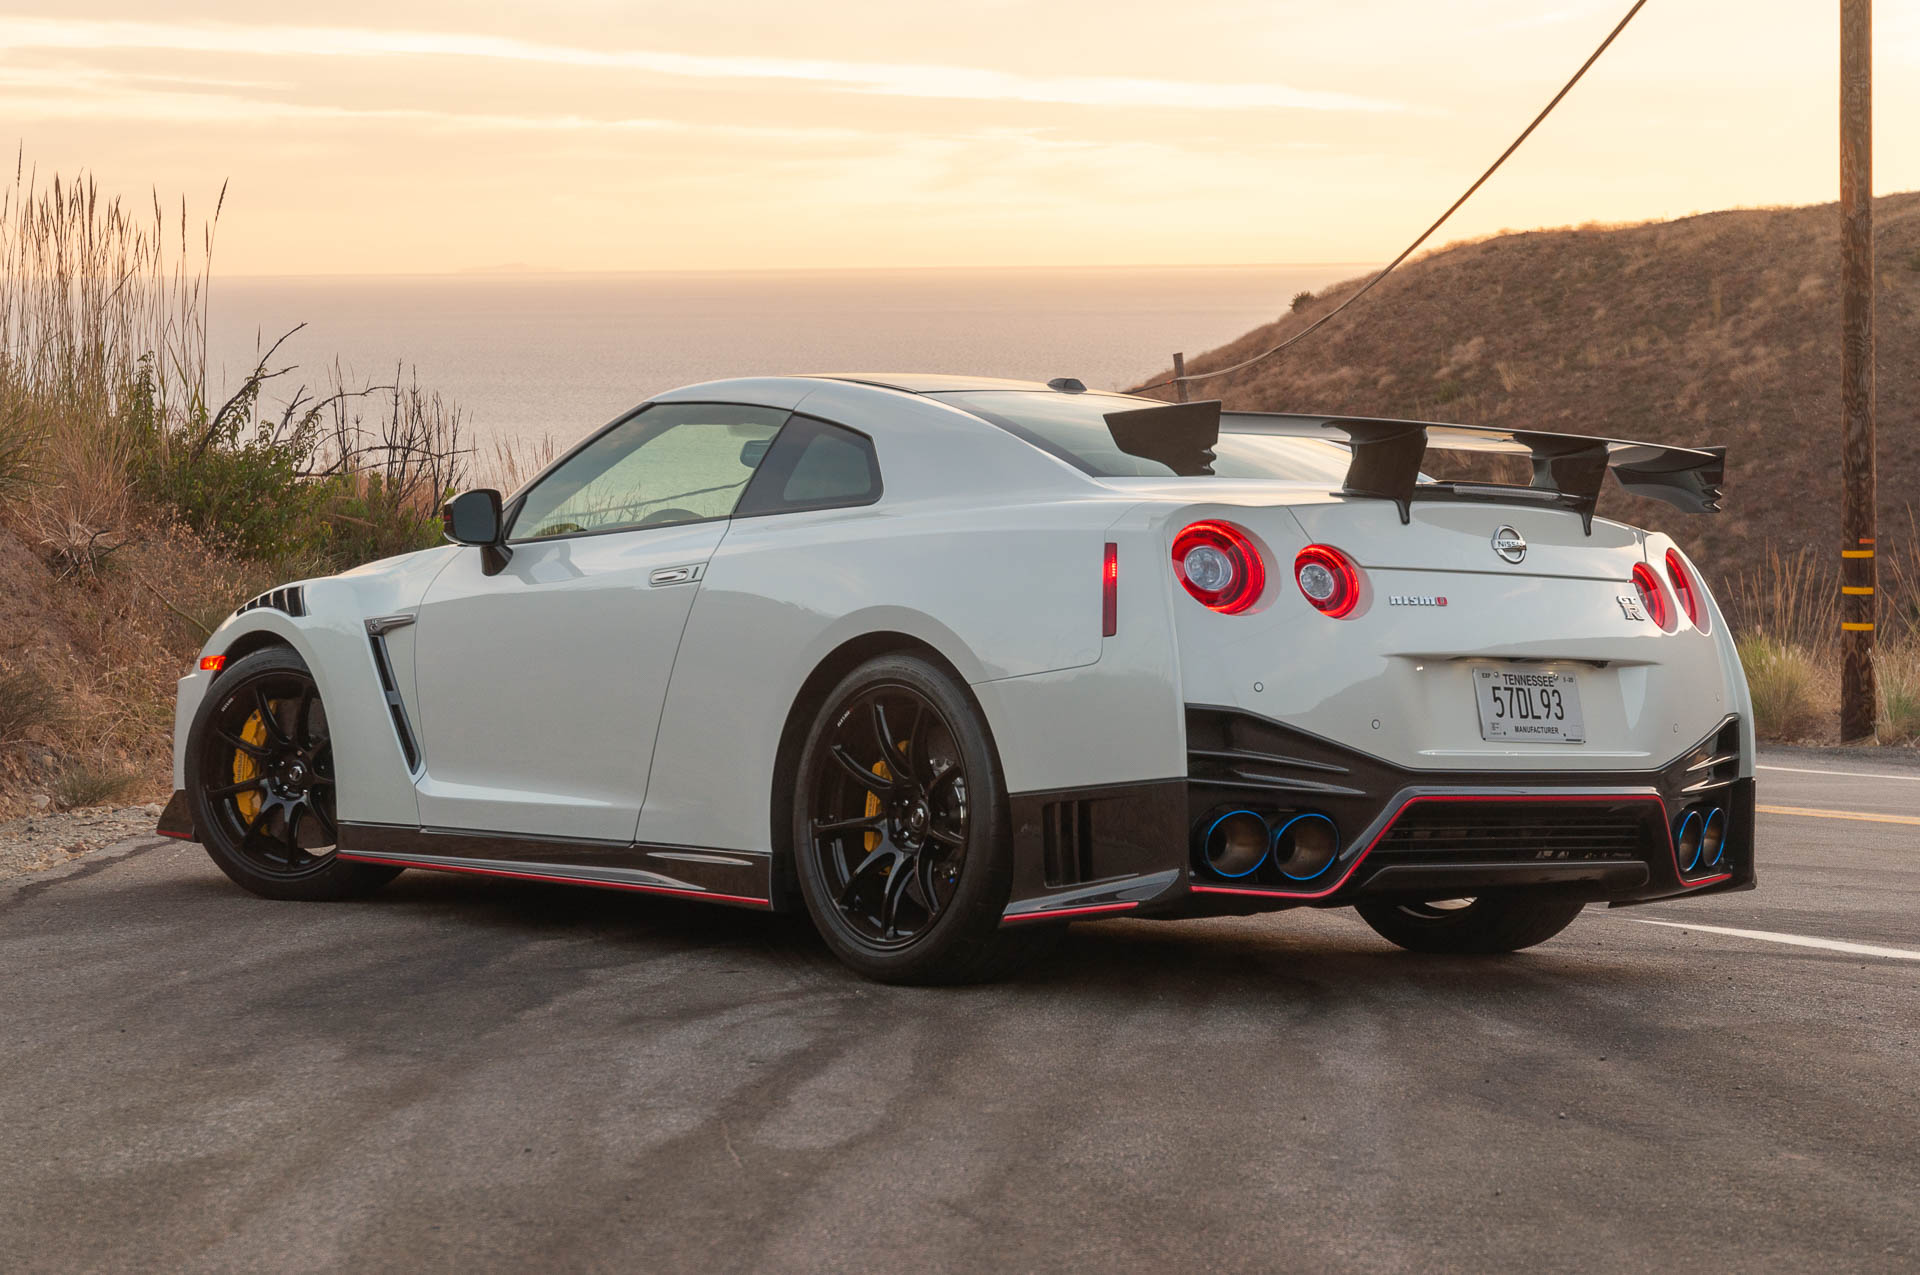 2020 Nissan GT-R Nismo, 2020 Honda Civic Type R, 2021 Mercedes-AMG GT 73: Car News Headlines